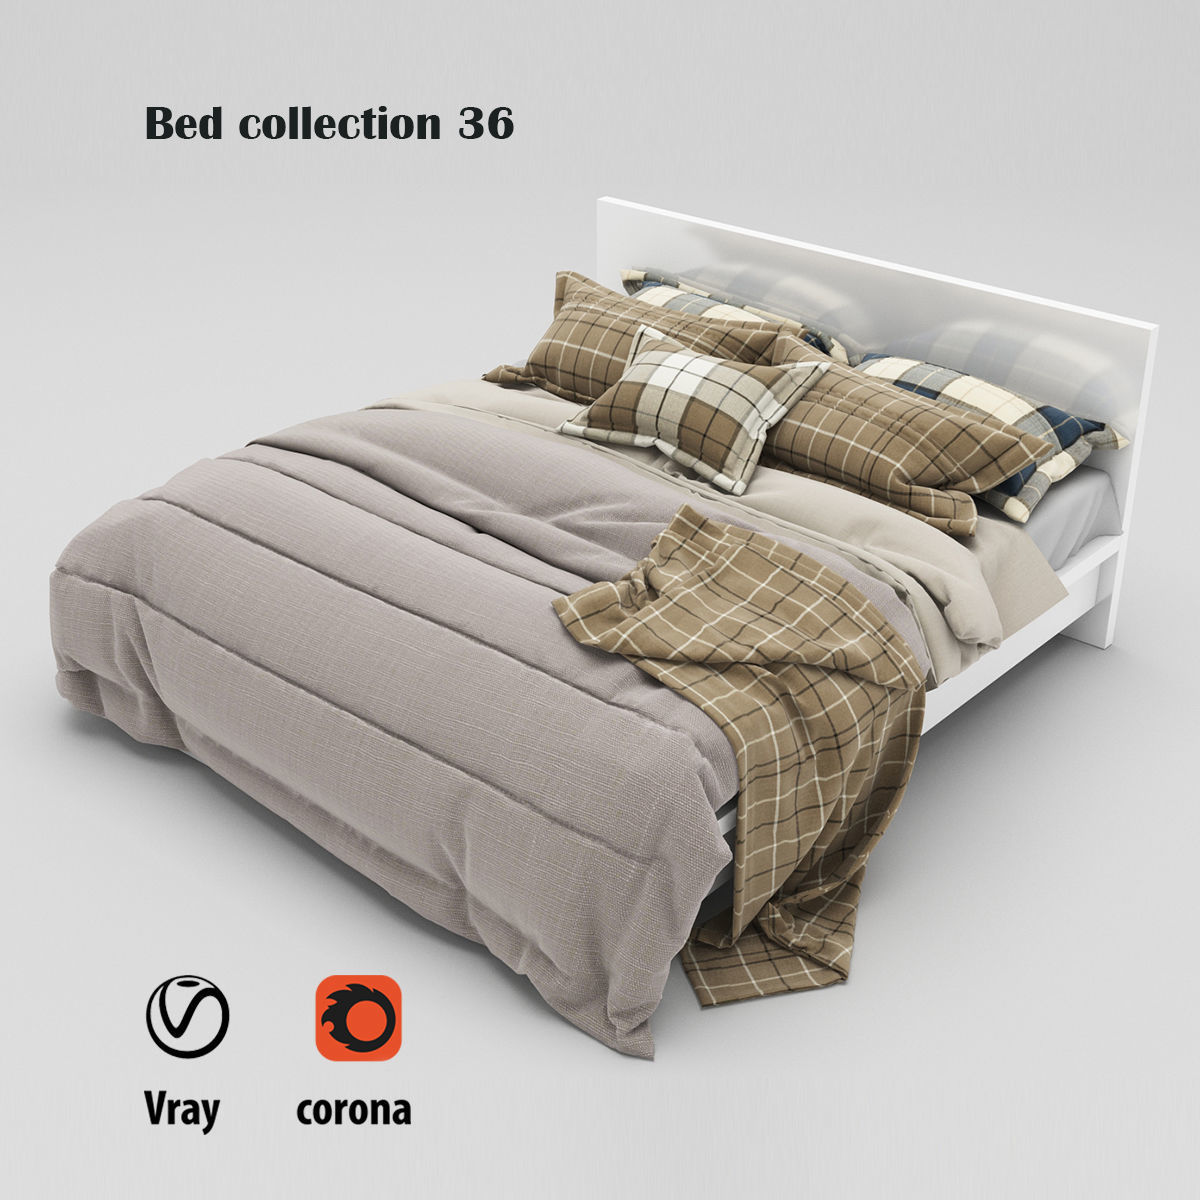 Bed collection 36